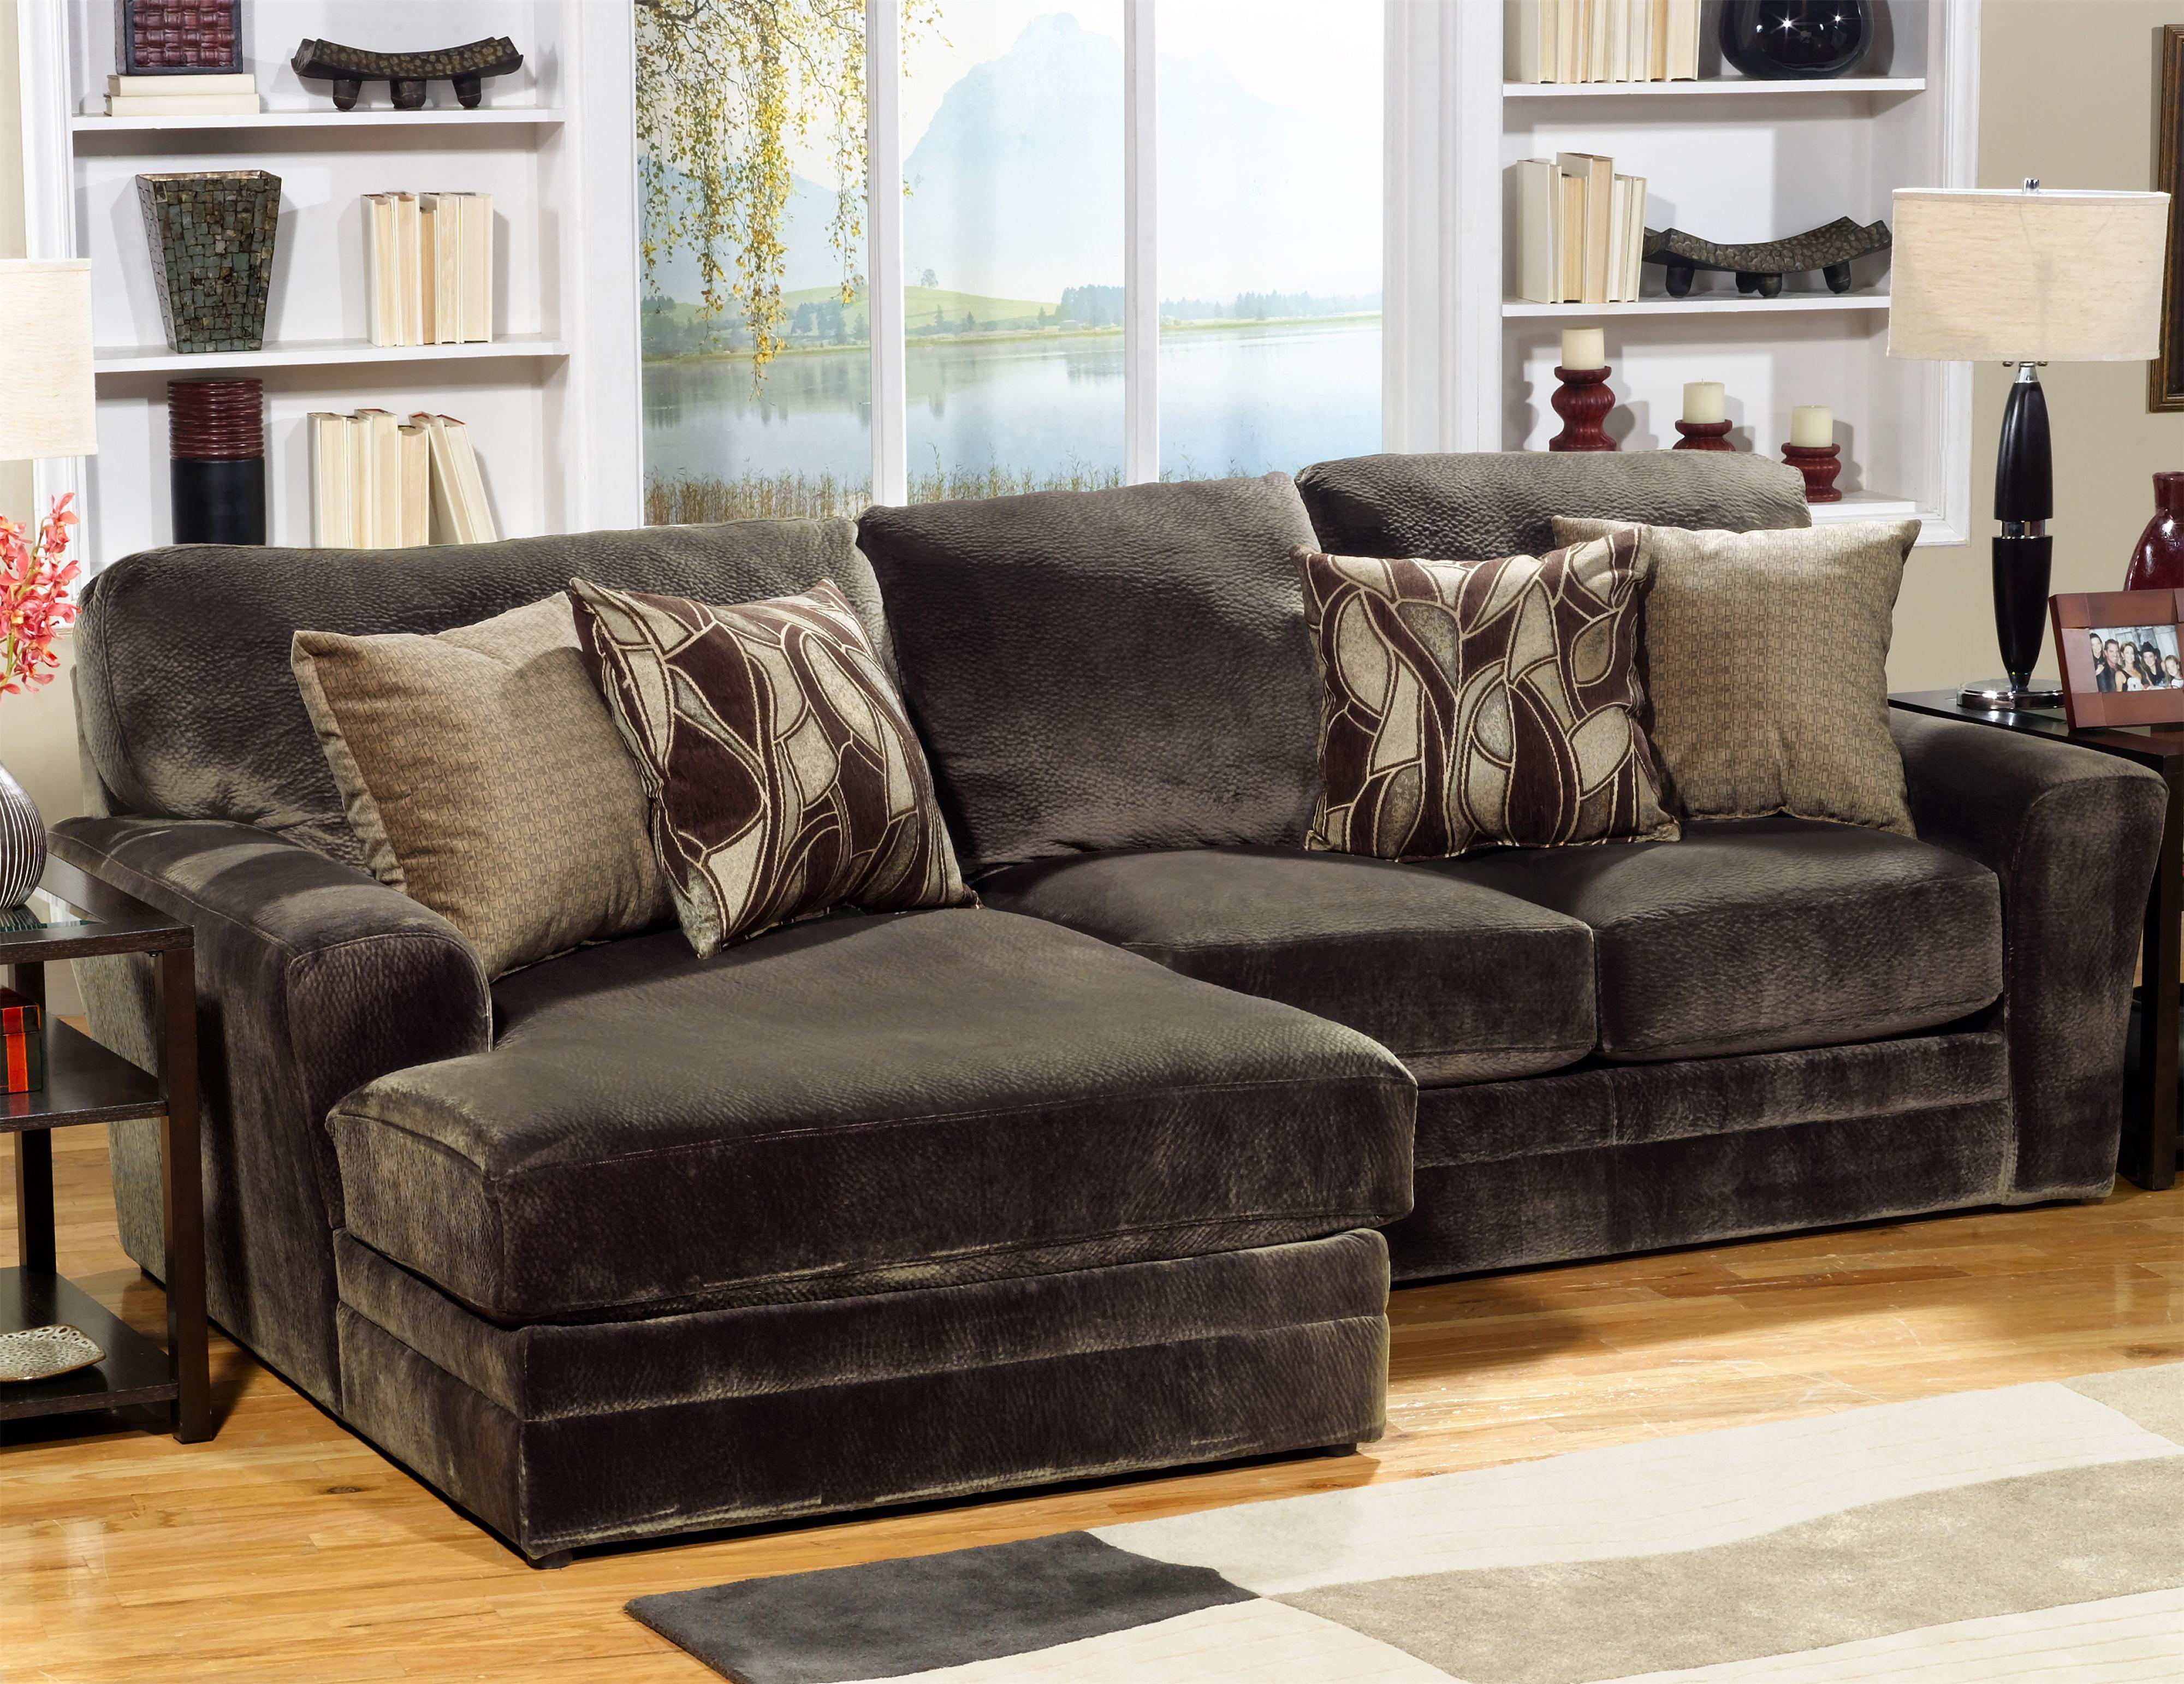 sofa w chaise dark brown rug jackson furniture 4377 everest 2 piece sectional with lsf